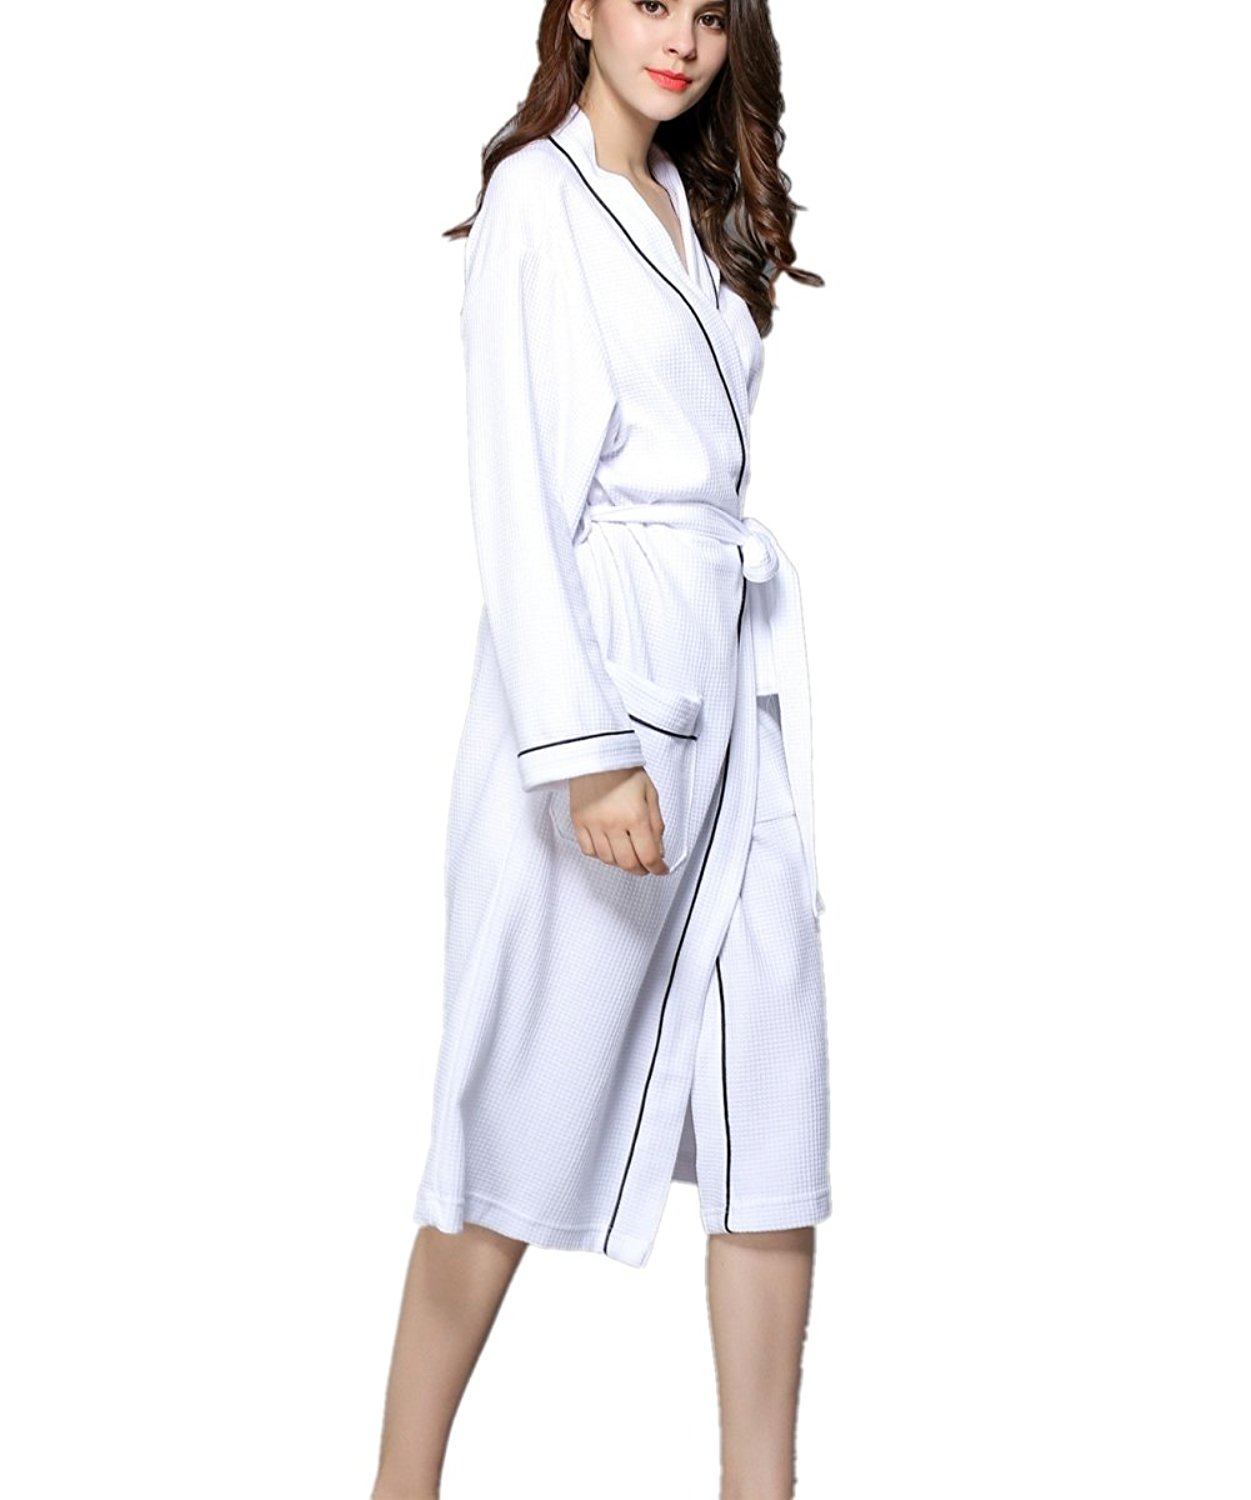 6667fd8fba Get Quotations · APXPF Women s Hotel Spa Collection Plush Robe